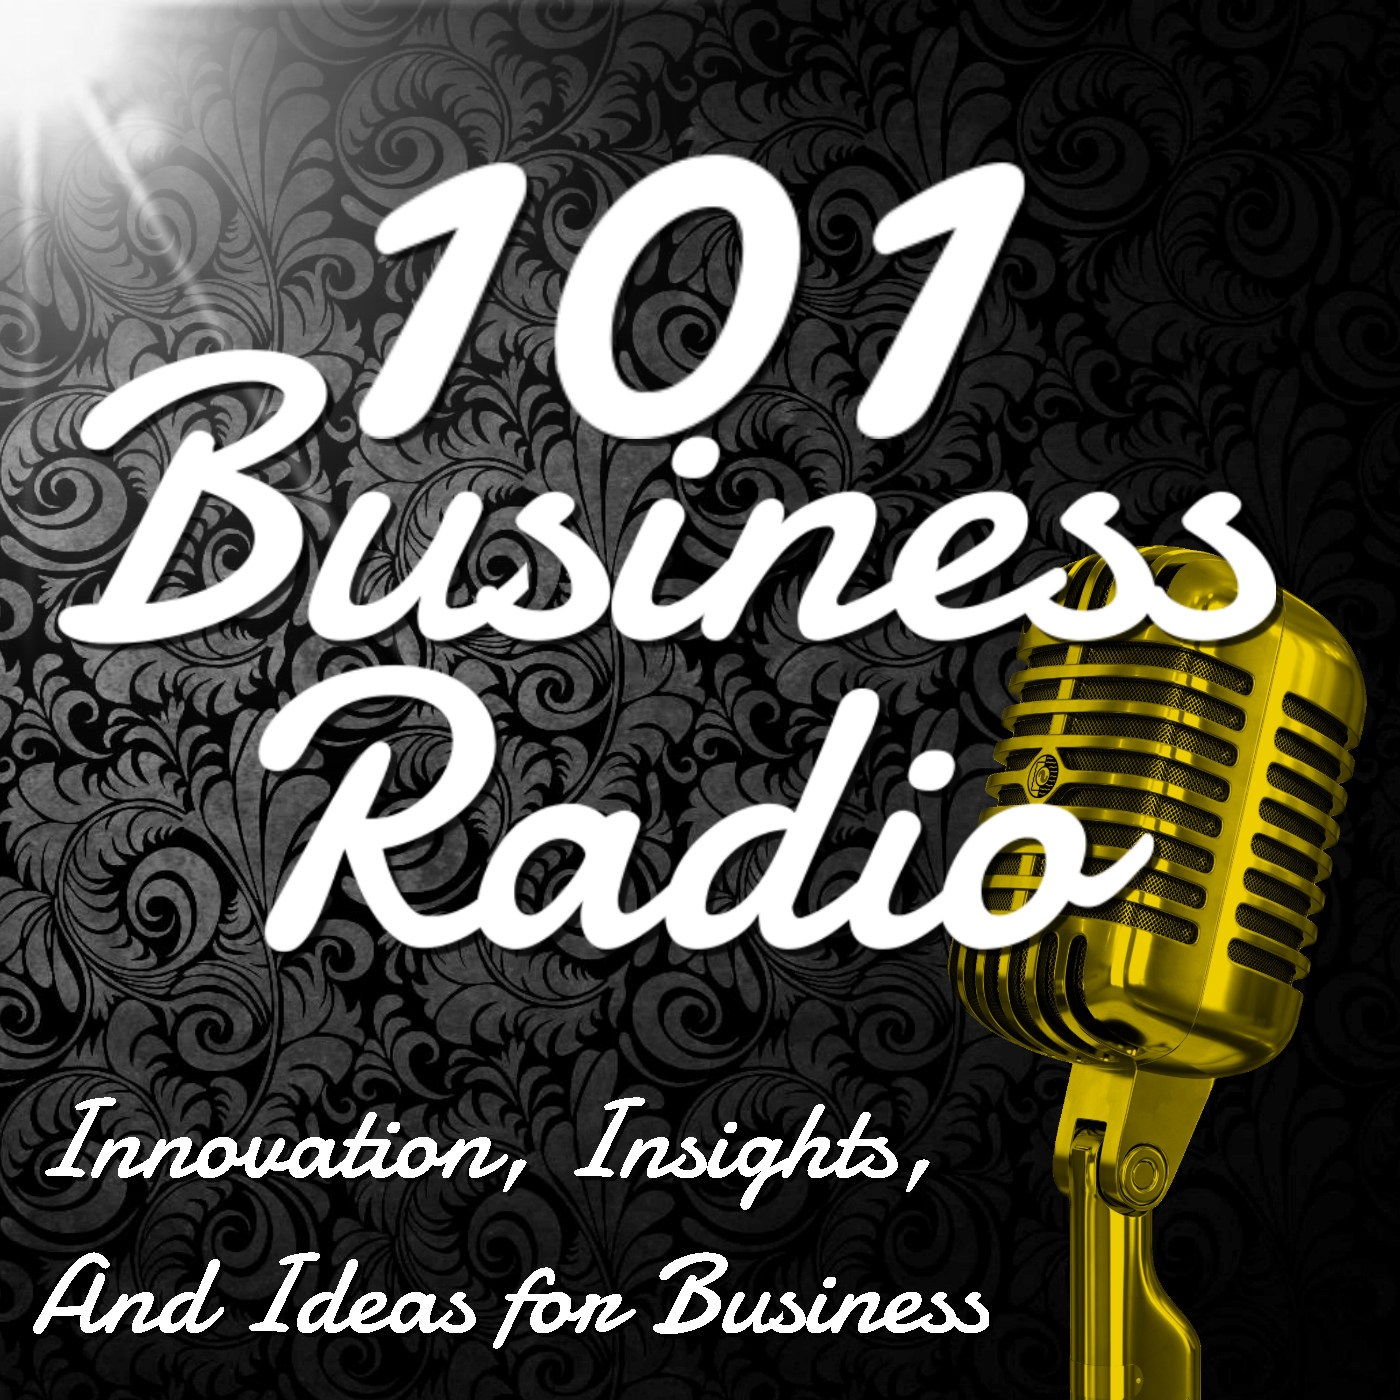 101-Business-Radio